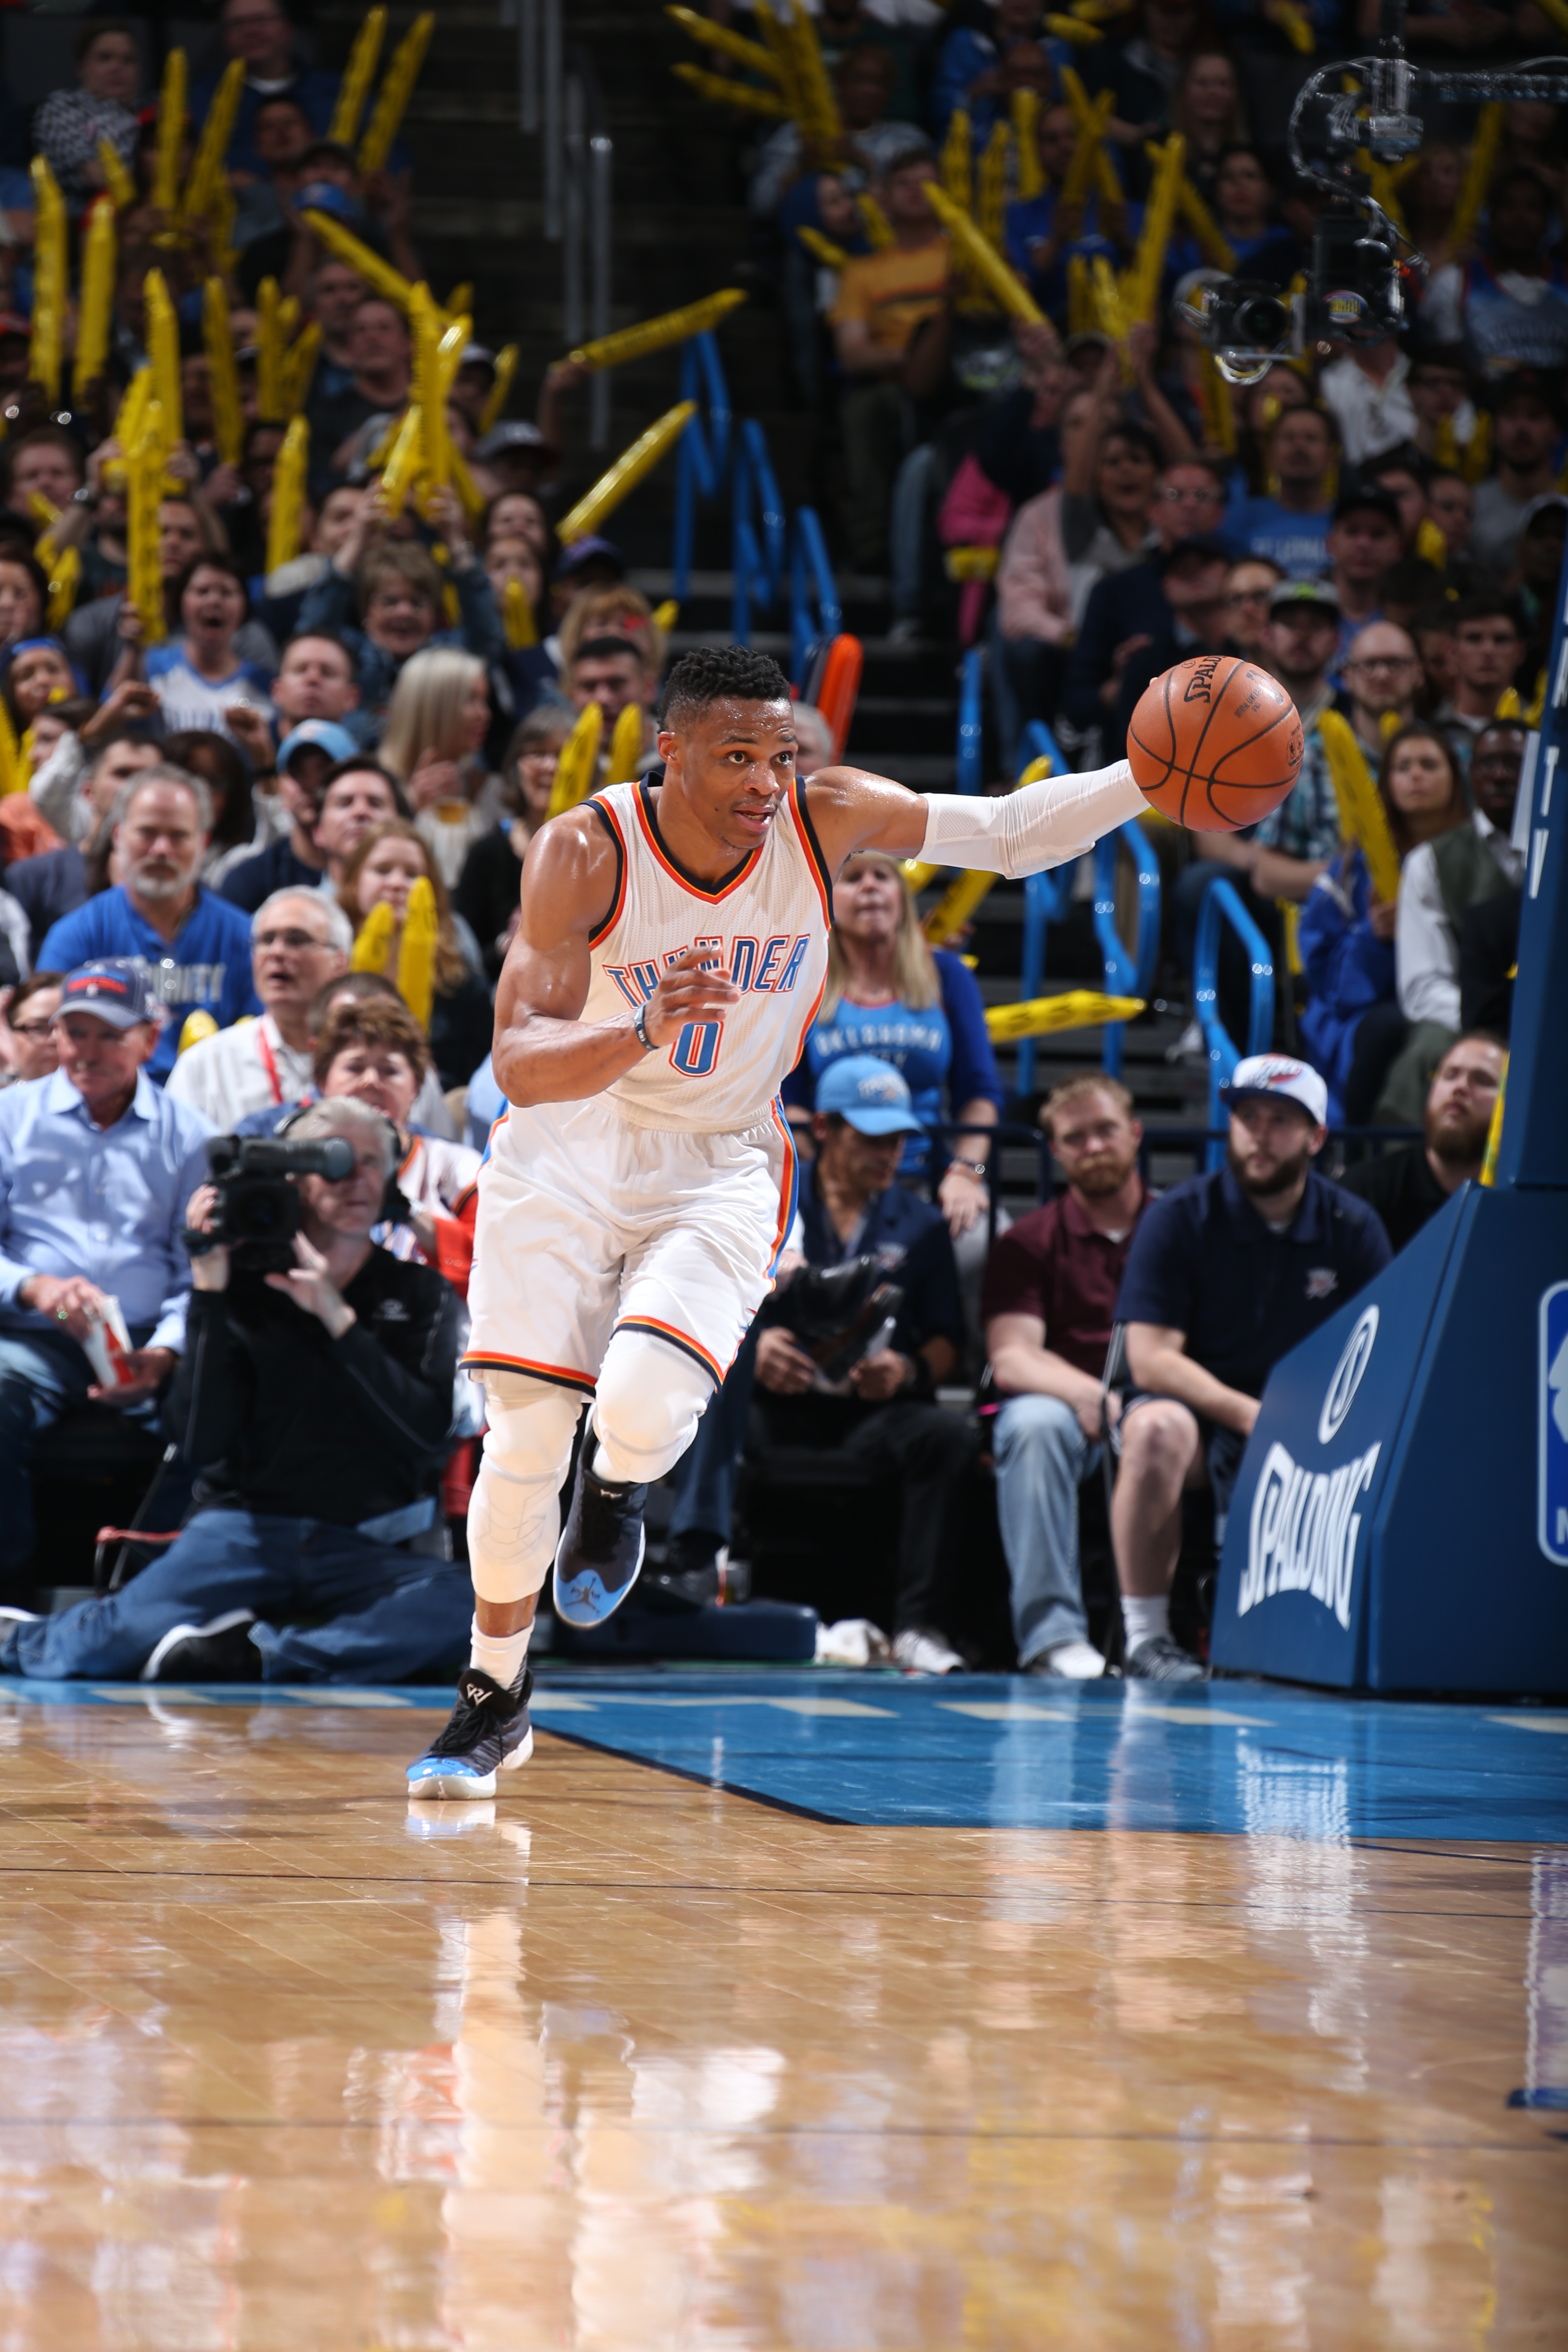 OKLAHOMA CITY, OK - MARCH 9:  Russell Westbrook #0 of the Oklahoma City Thunder brings the ball up court against the Los Angeles Clippers on March 9, 2016 at Chesapeake Energy Arena in Oklahoma City, Oklahoma. (Photo by Layne Murdoch Jr./NBAE via Getty Im